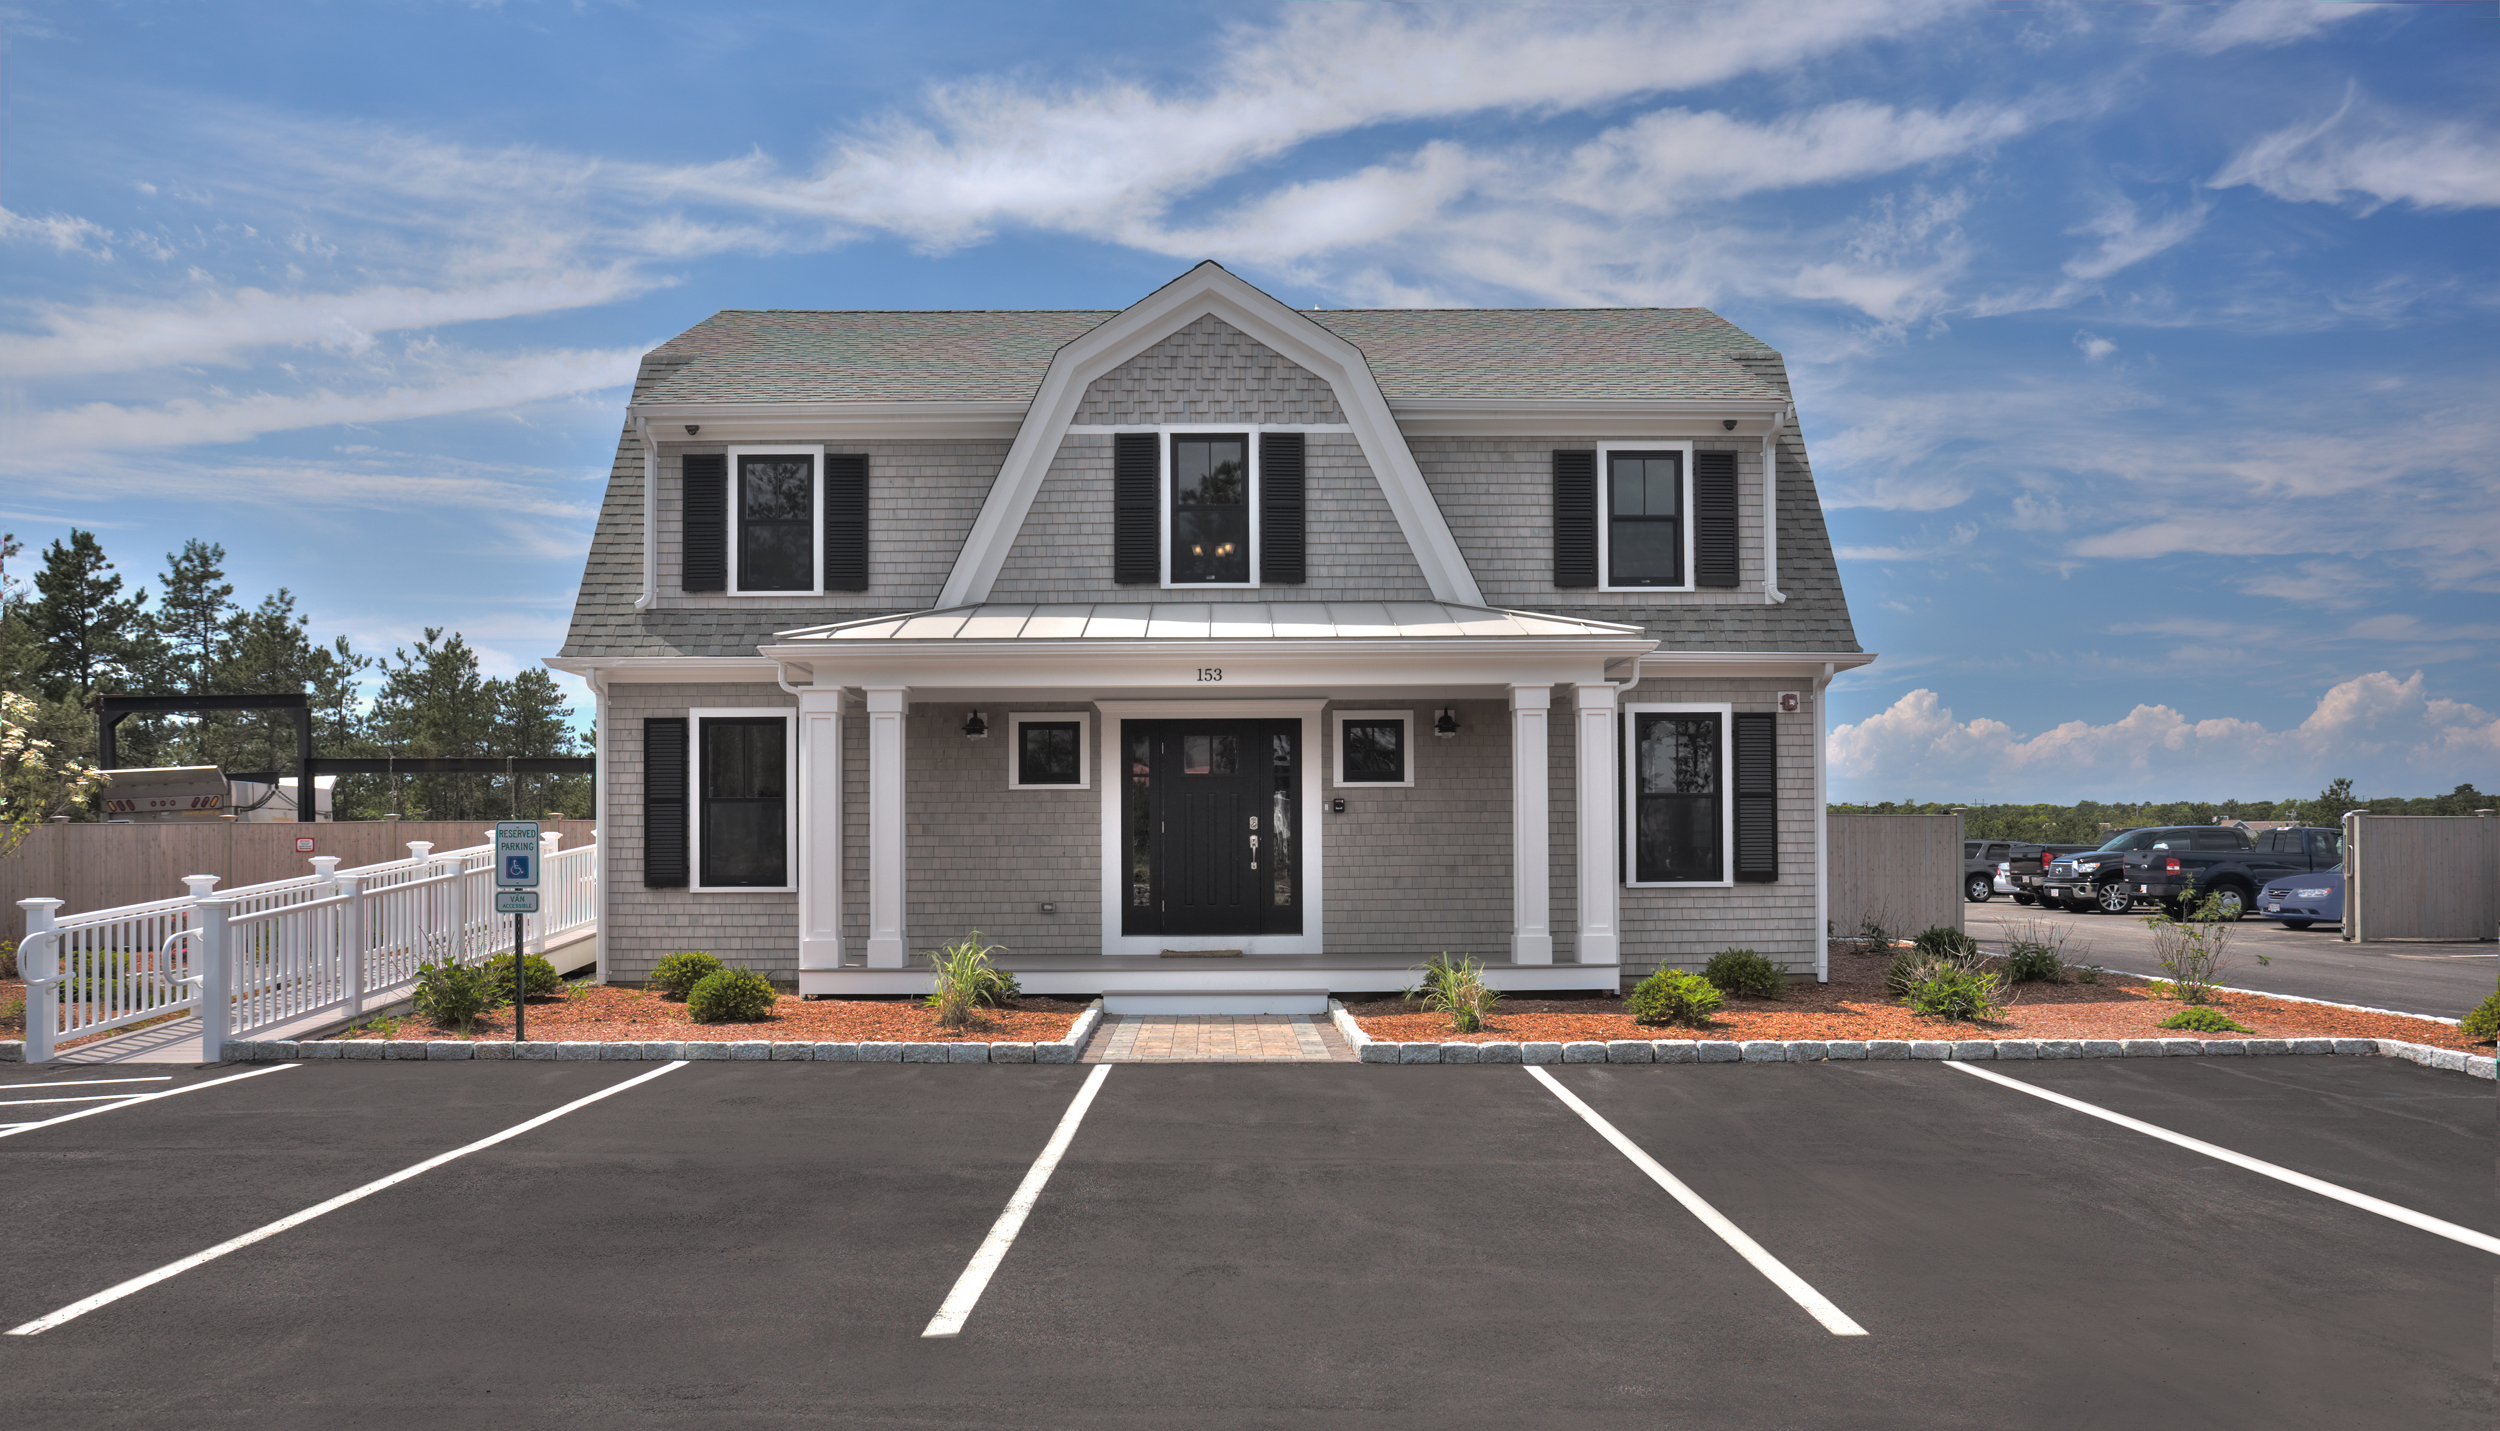 7,000+/- Sq Ft Office/Warehouse Building on 2+/- Acres for Sale in Mashpee, Cape Cod